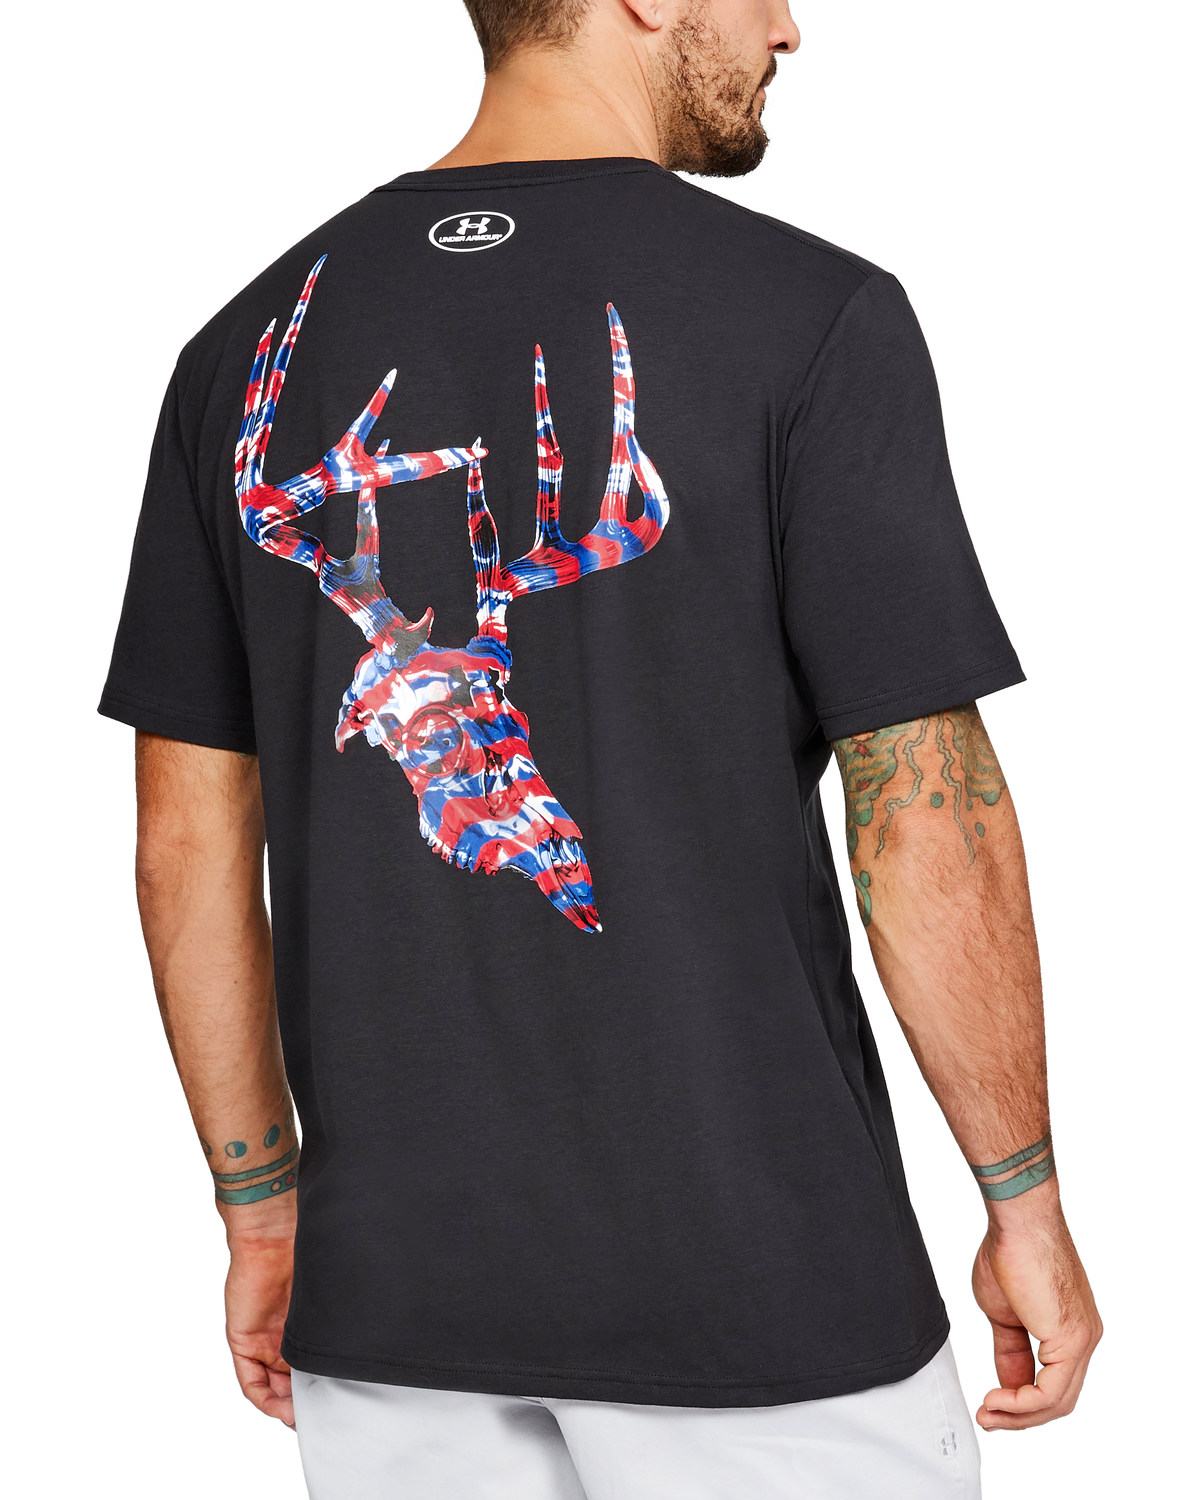 Under Armour Men s UA AF Whitetail Skull Short Sleeve T-Shirt  963a5a1b9f5